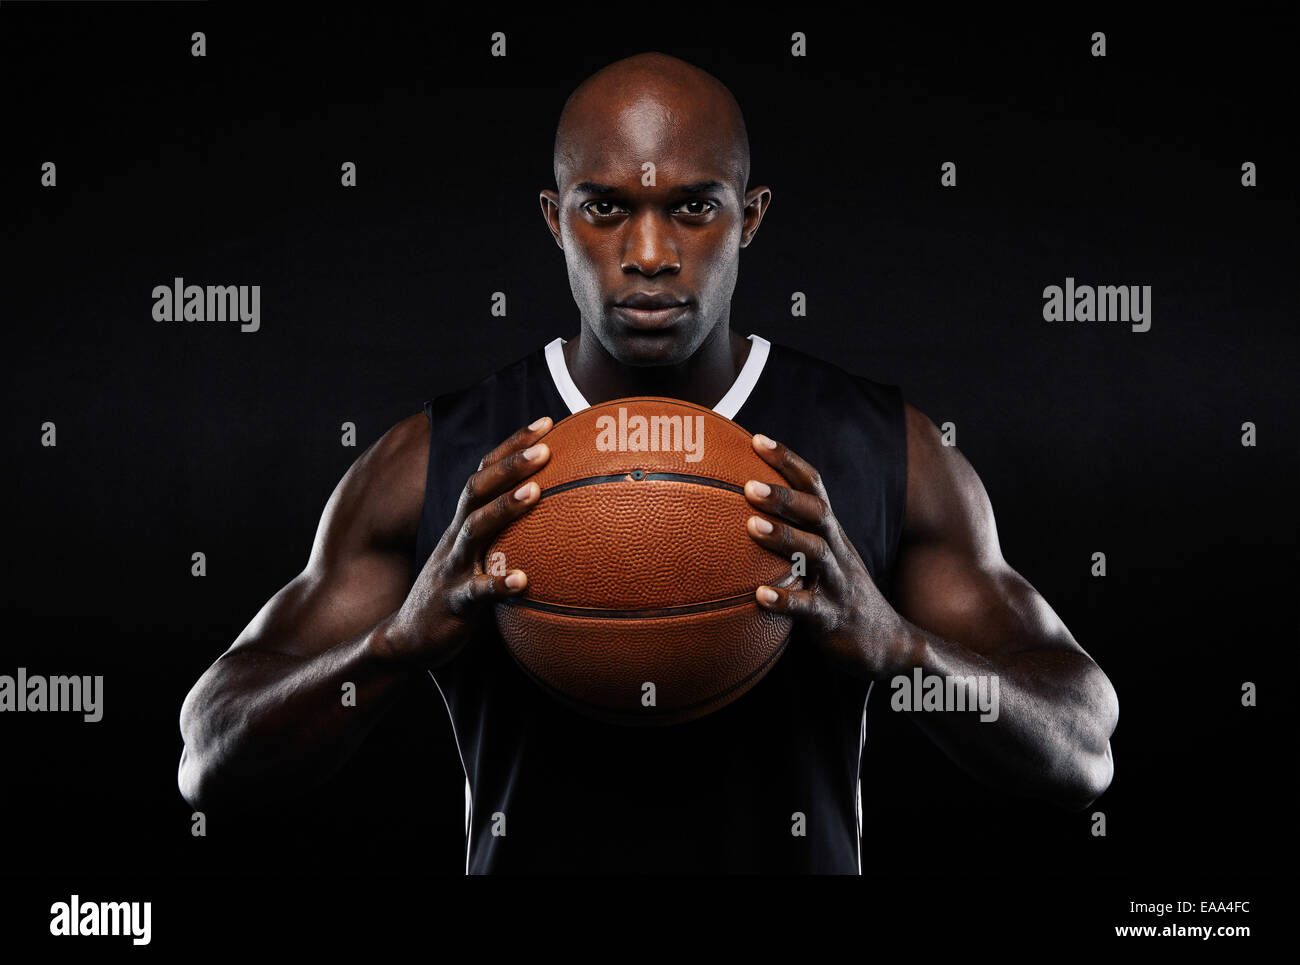 portrait of afro american male basketball player with a ball over